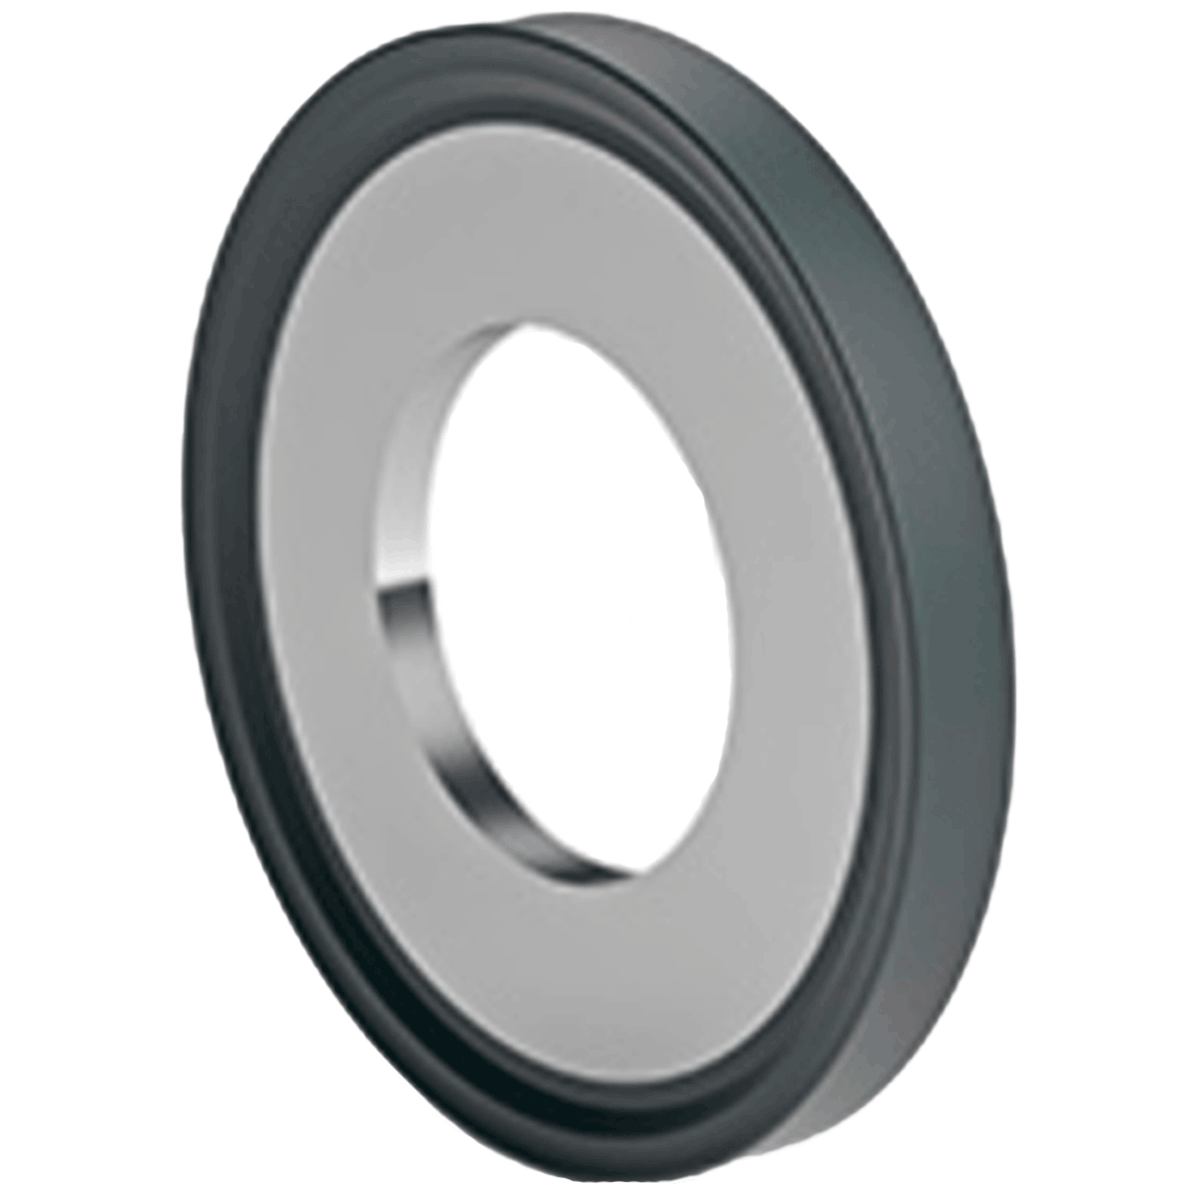 USIT-Rings / Bonded-Seals